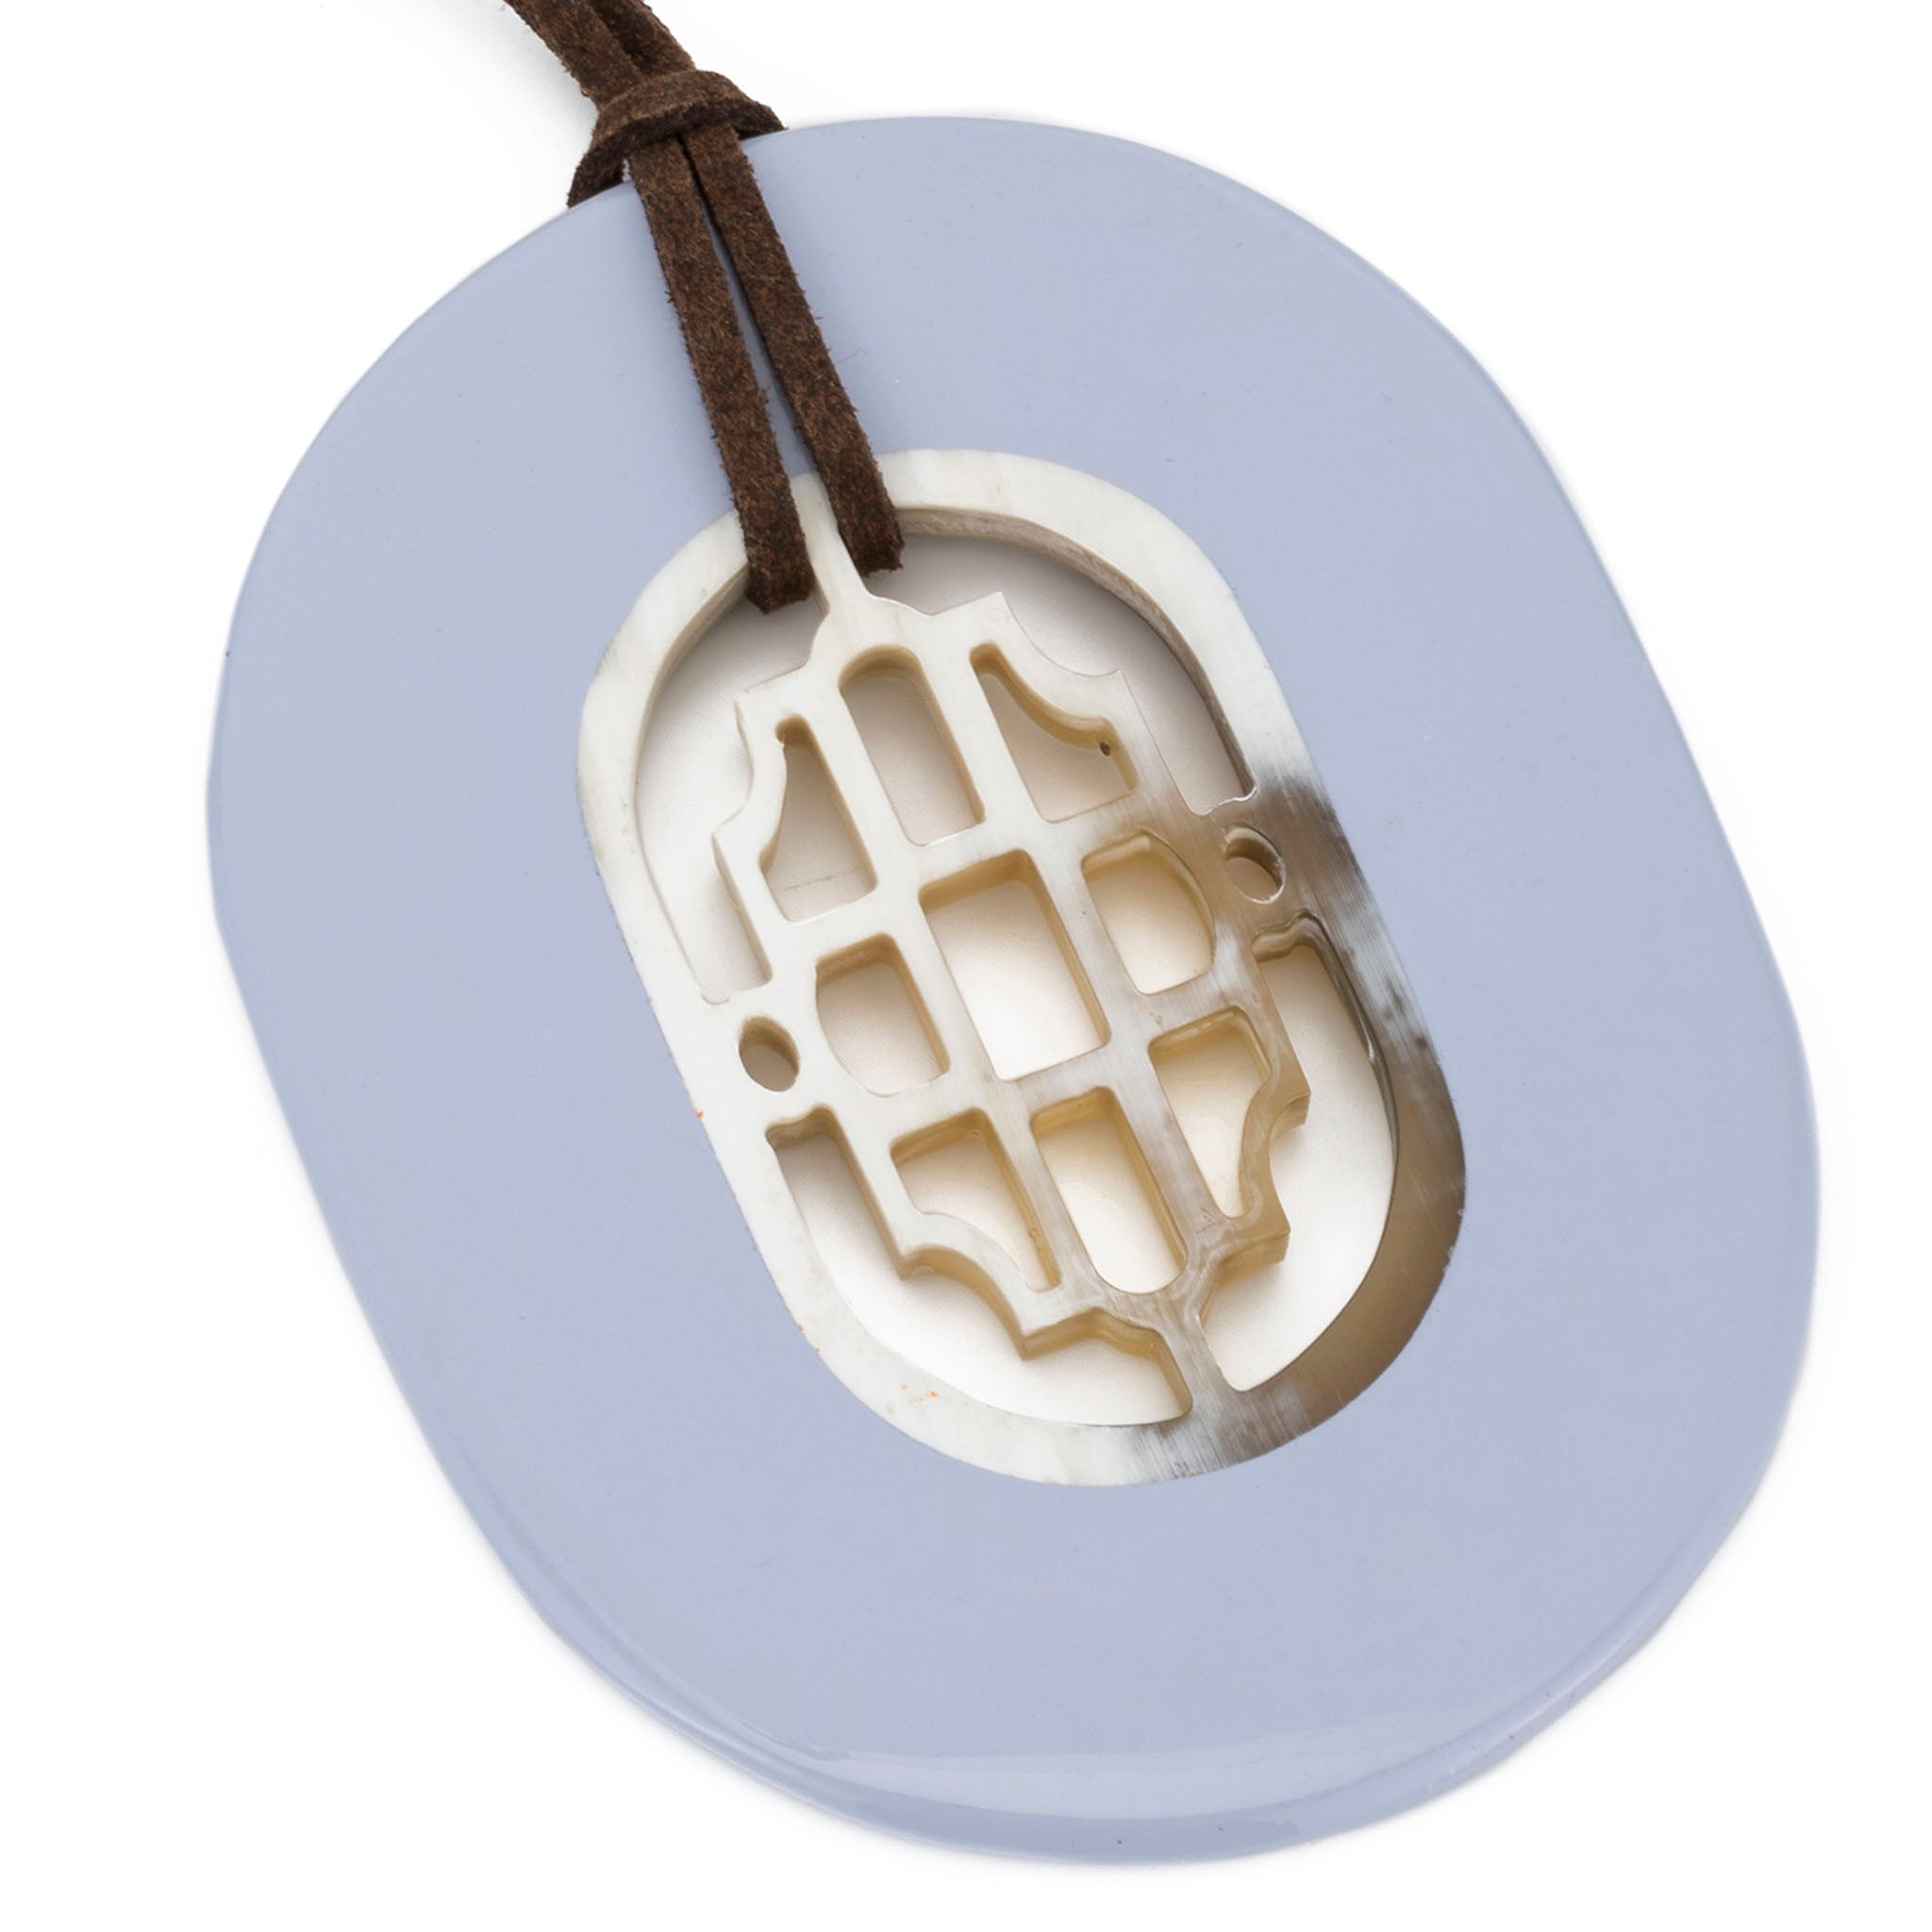 Oval Buffalo Pendant Carved Center Periwinkle Lacquer Frame Close View - Vivo Direct